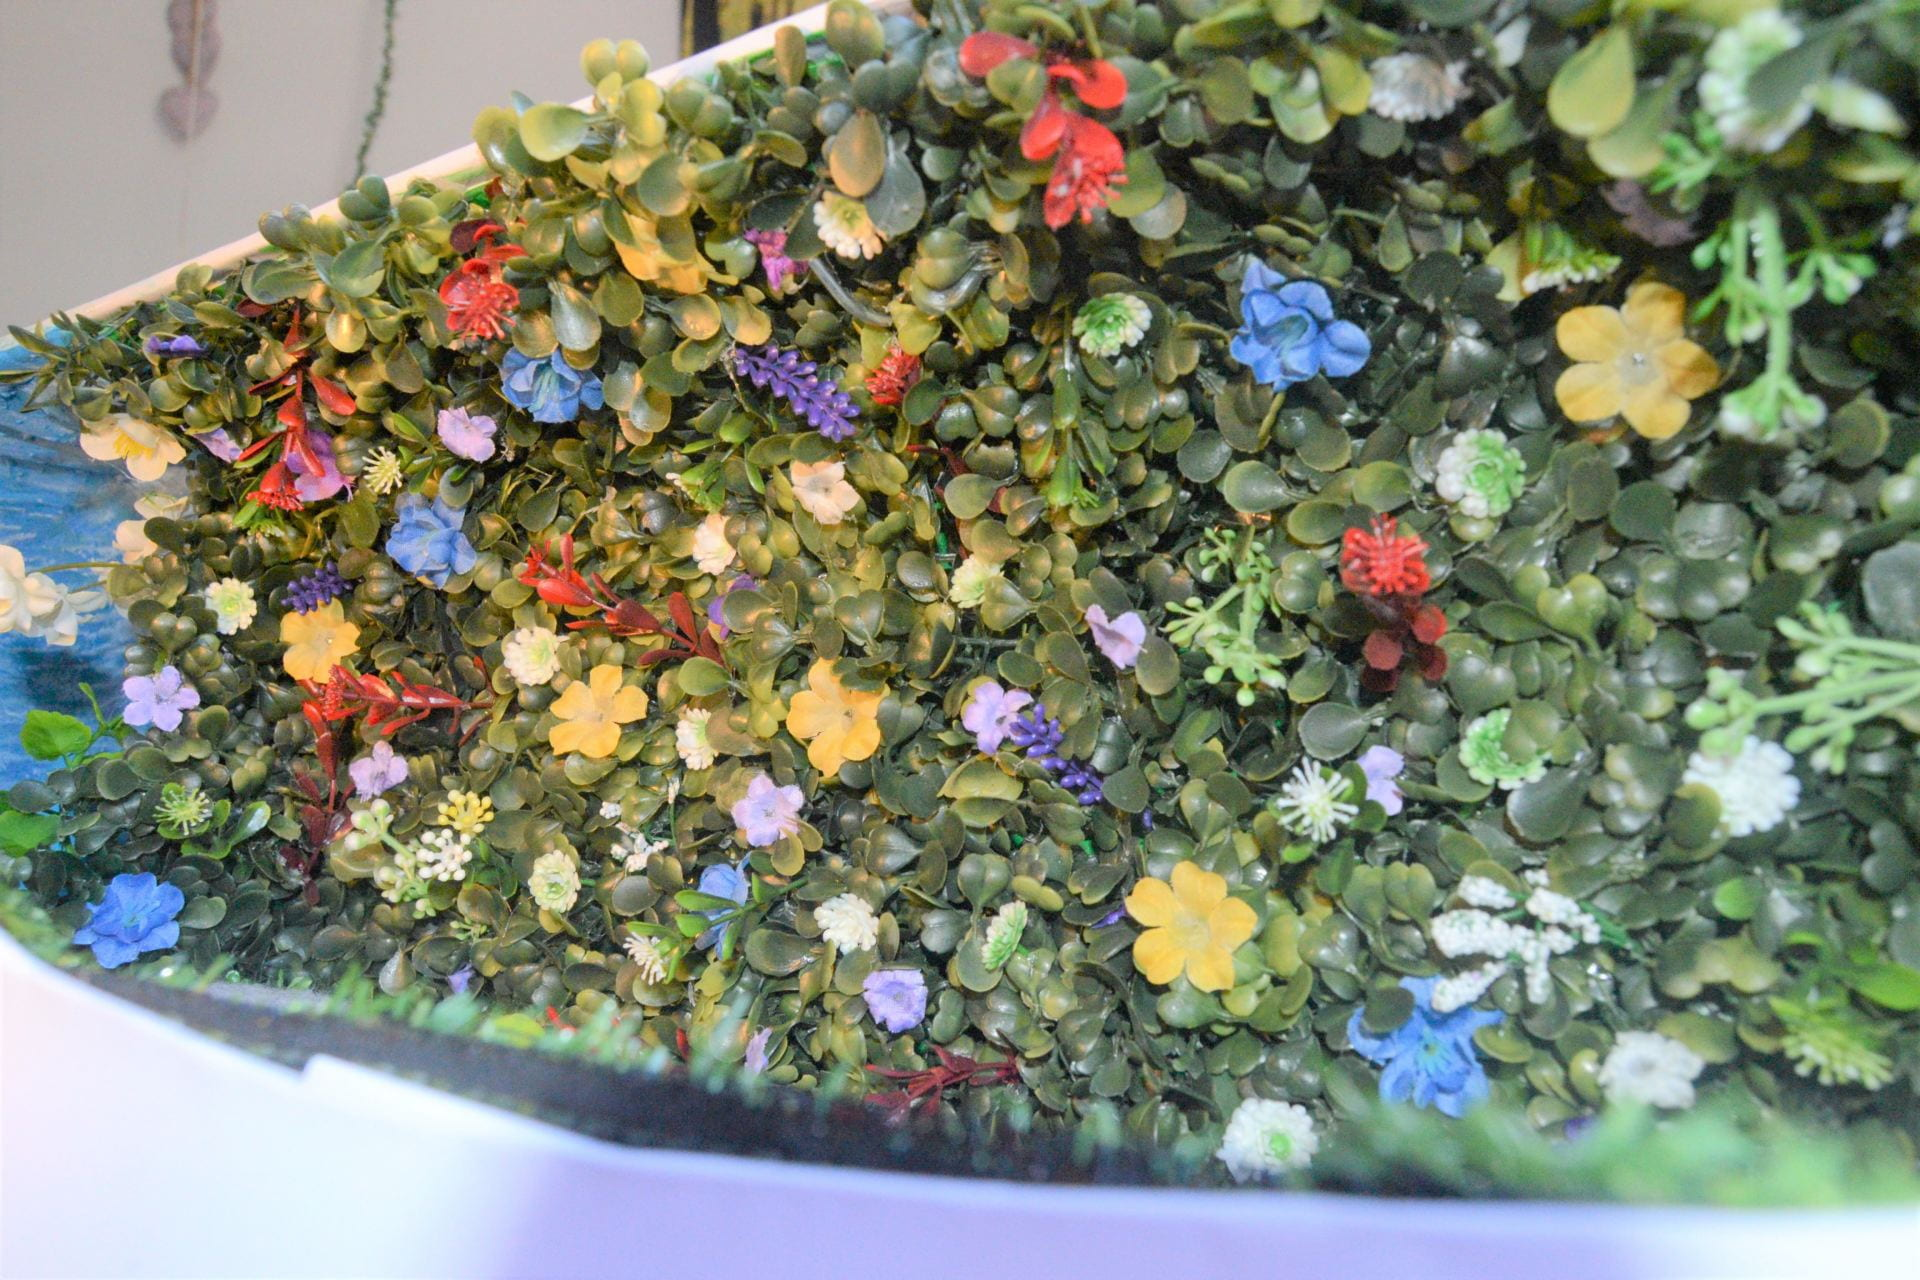 The Living walls vivid greens and bright colours from the flowers in summer bring the nature inside.